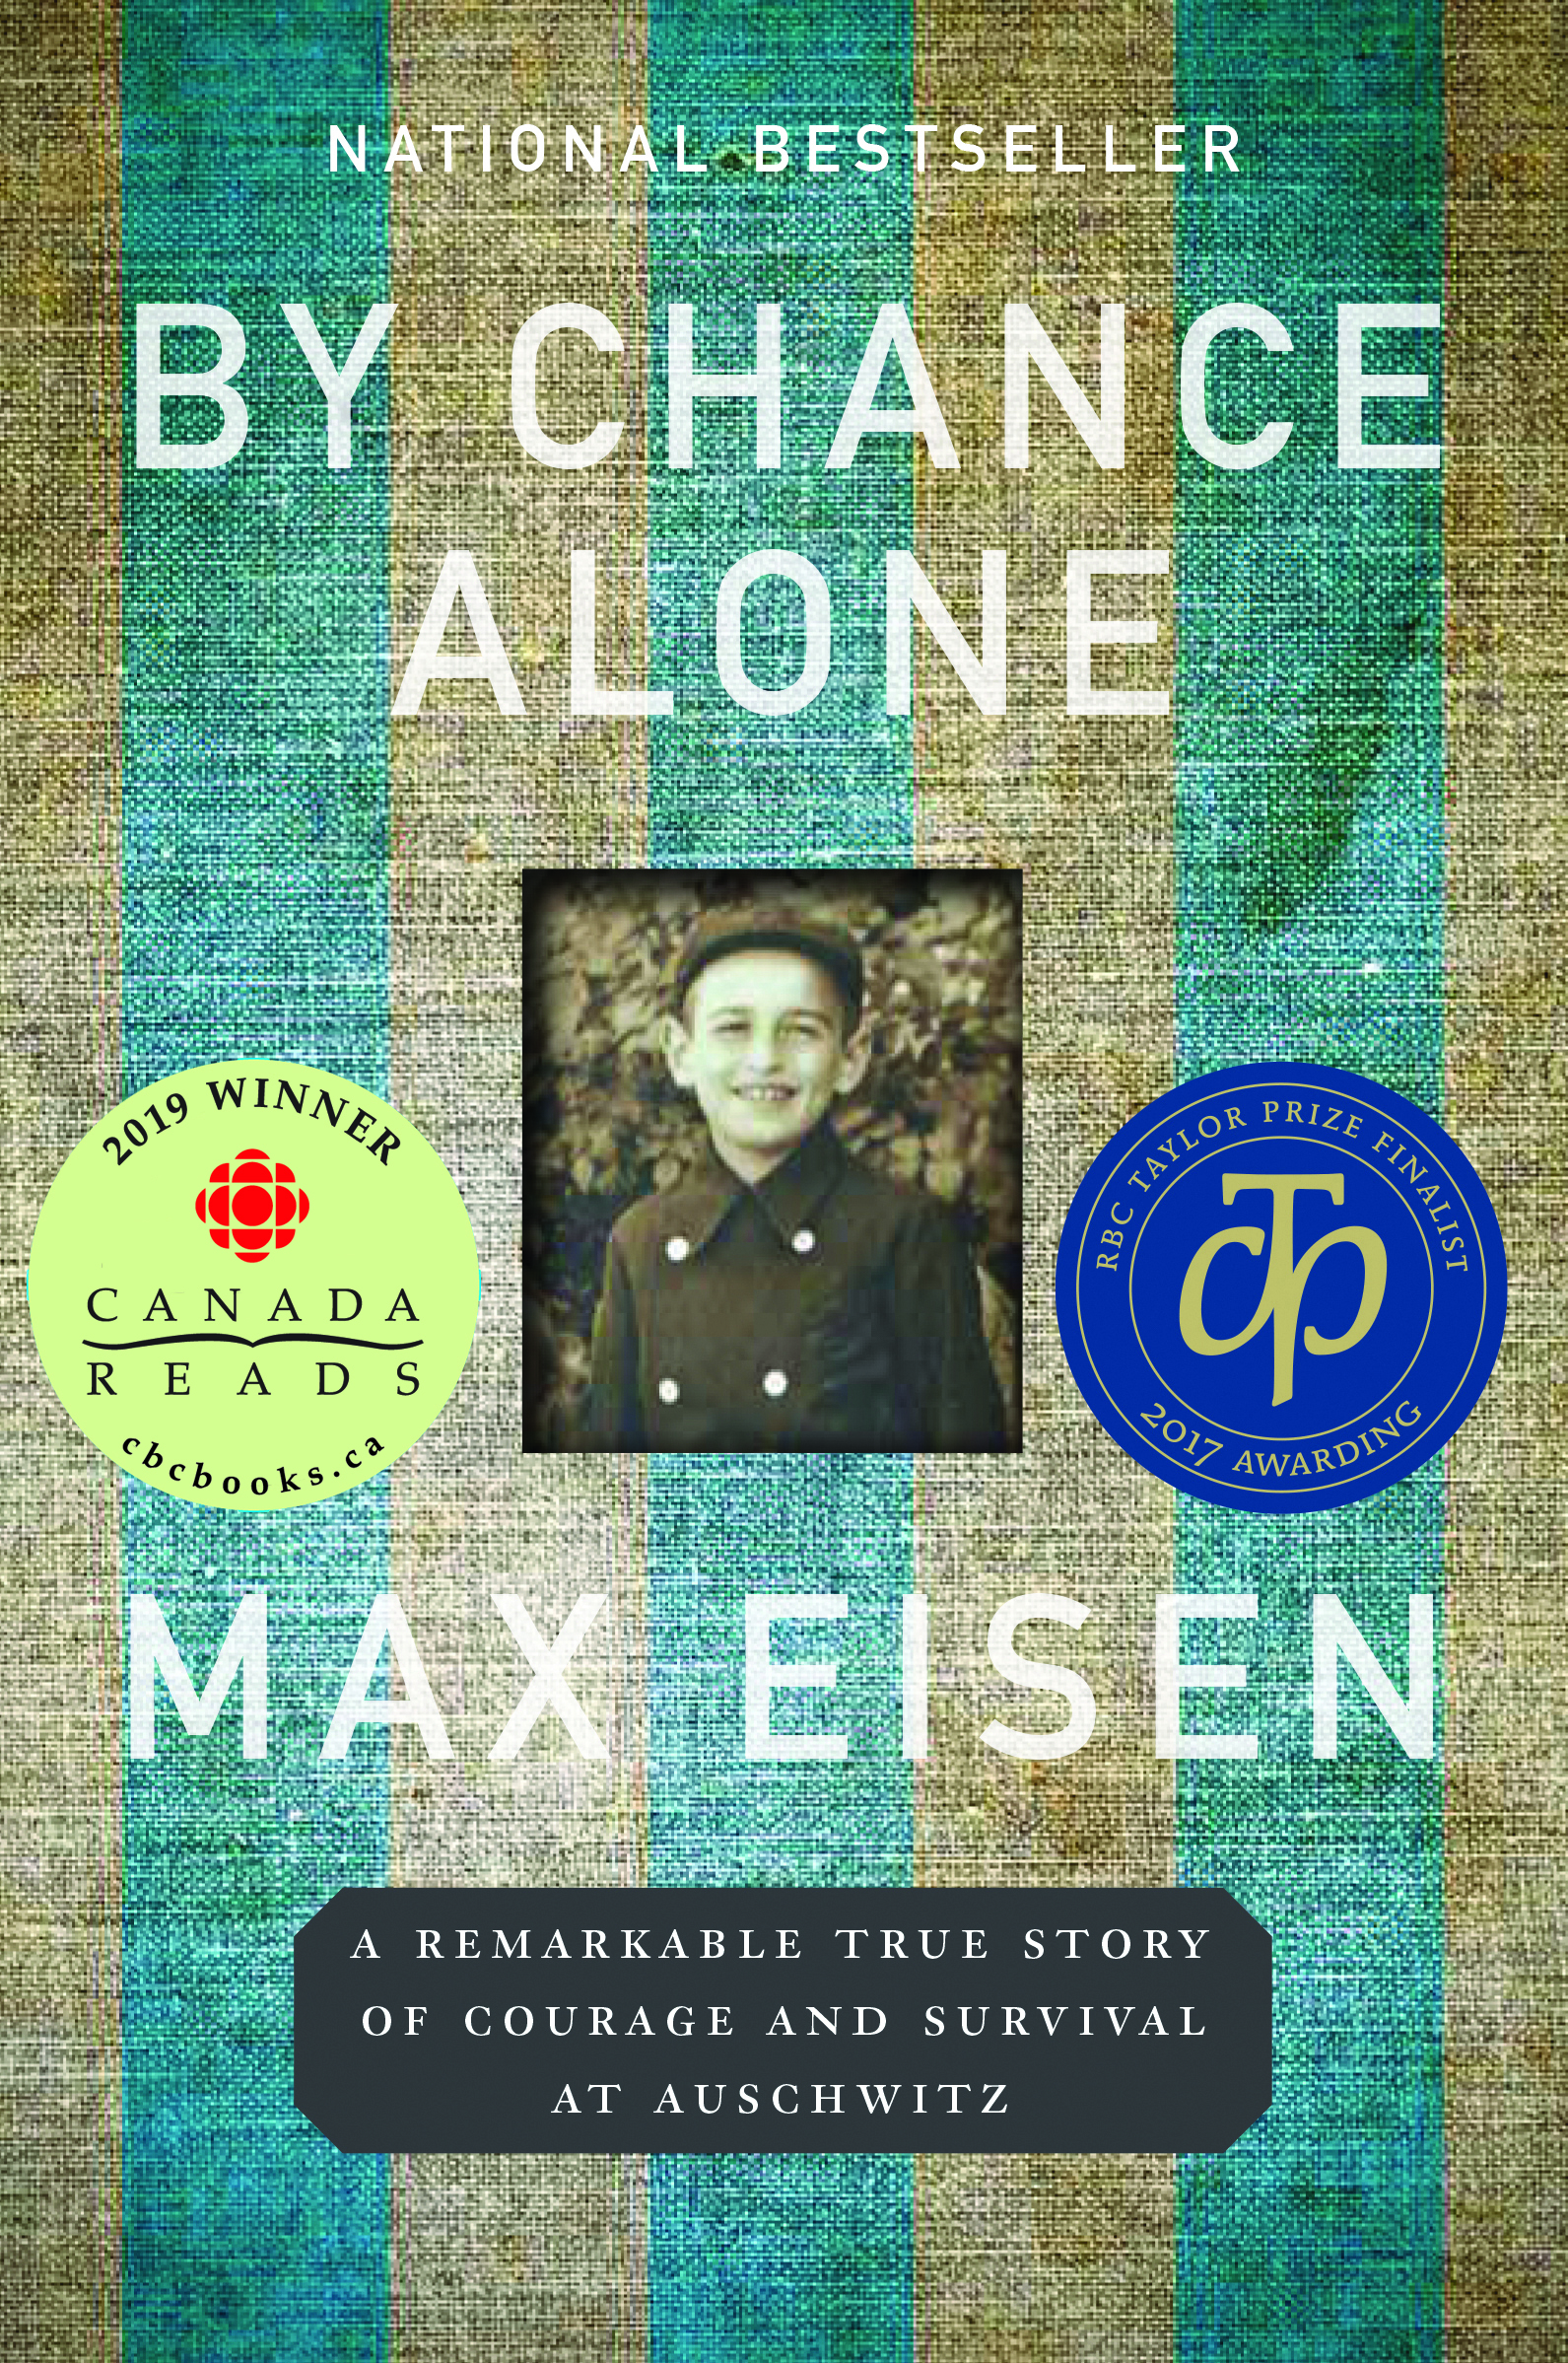 One Book One Brant - By Chance Alone